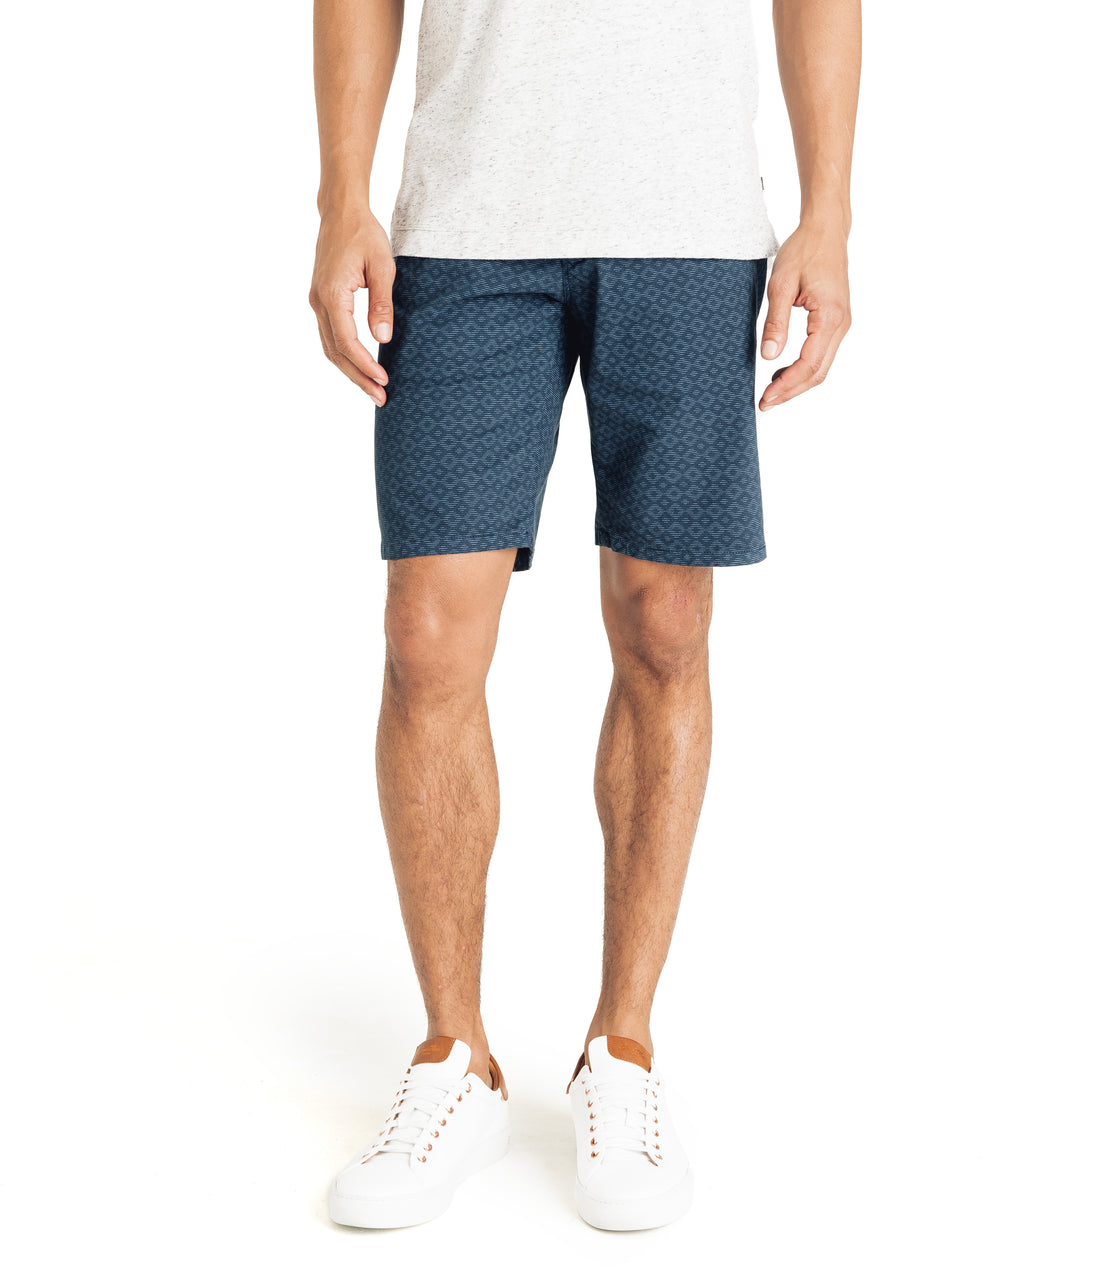 Monaco Diamond Stripe Stretch Twill Wrap Short - Denim Blue - Good Man Brand - Monaco Diamond Stripe Stretch Twill Wrap Short - Denim Blue